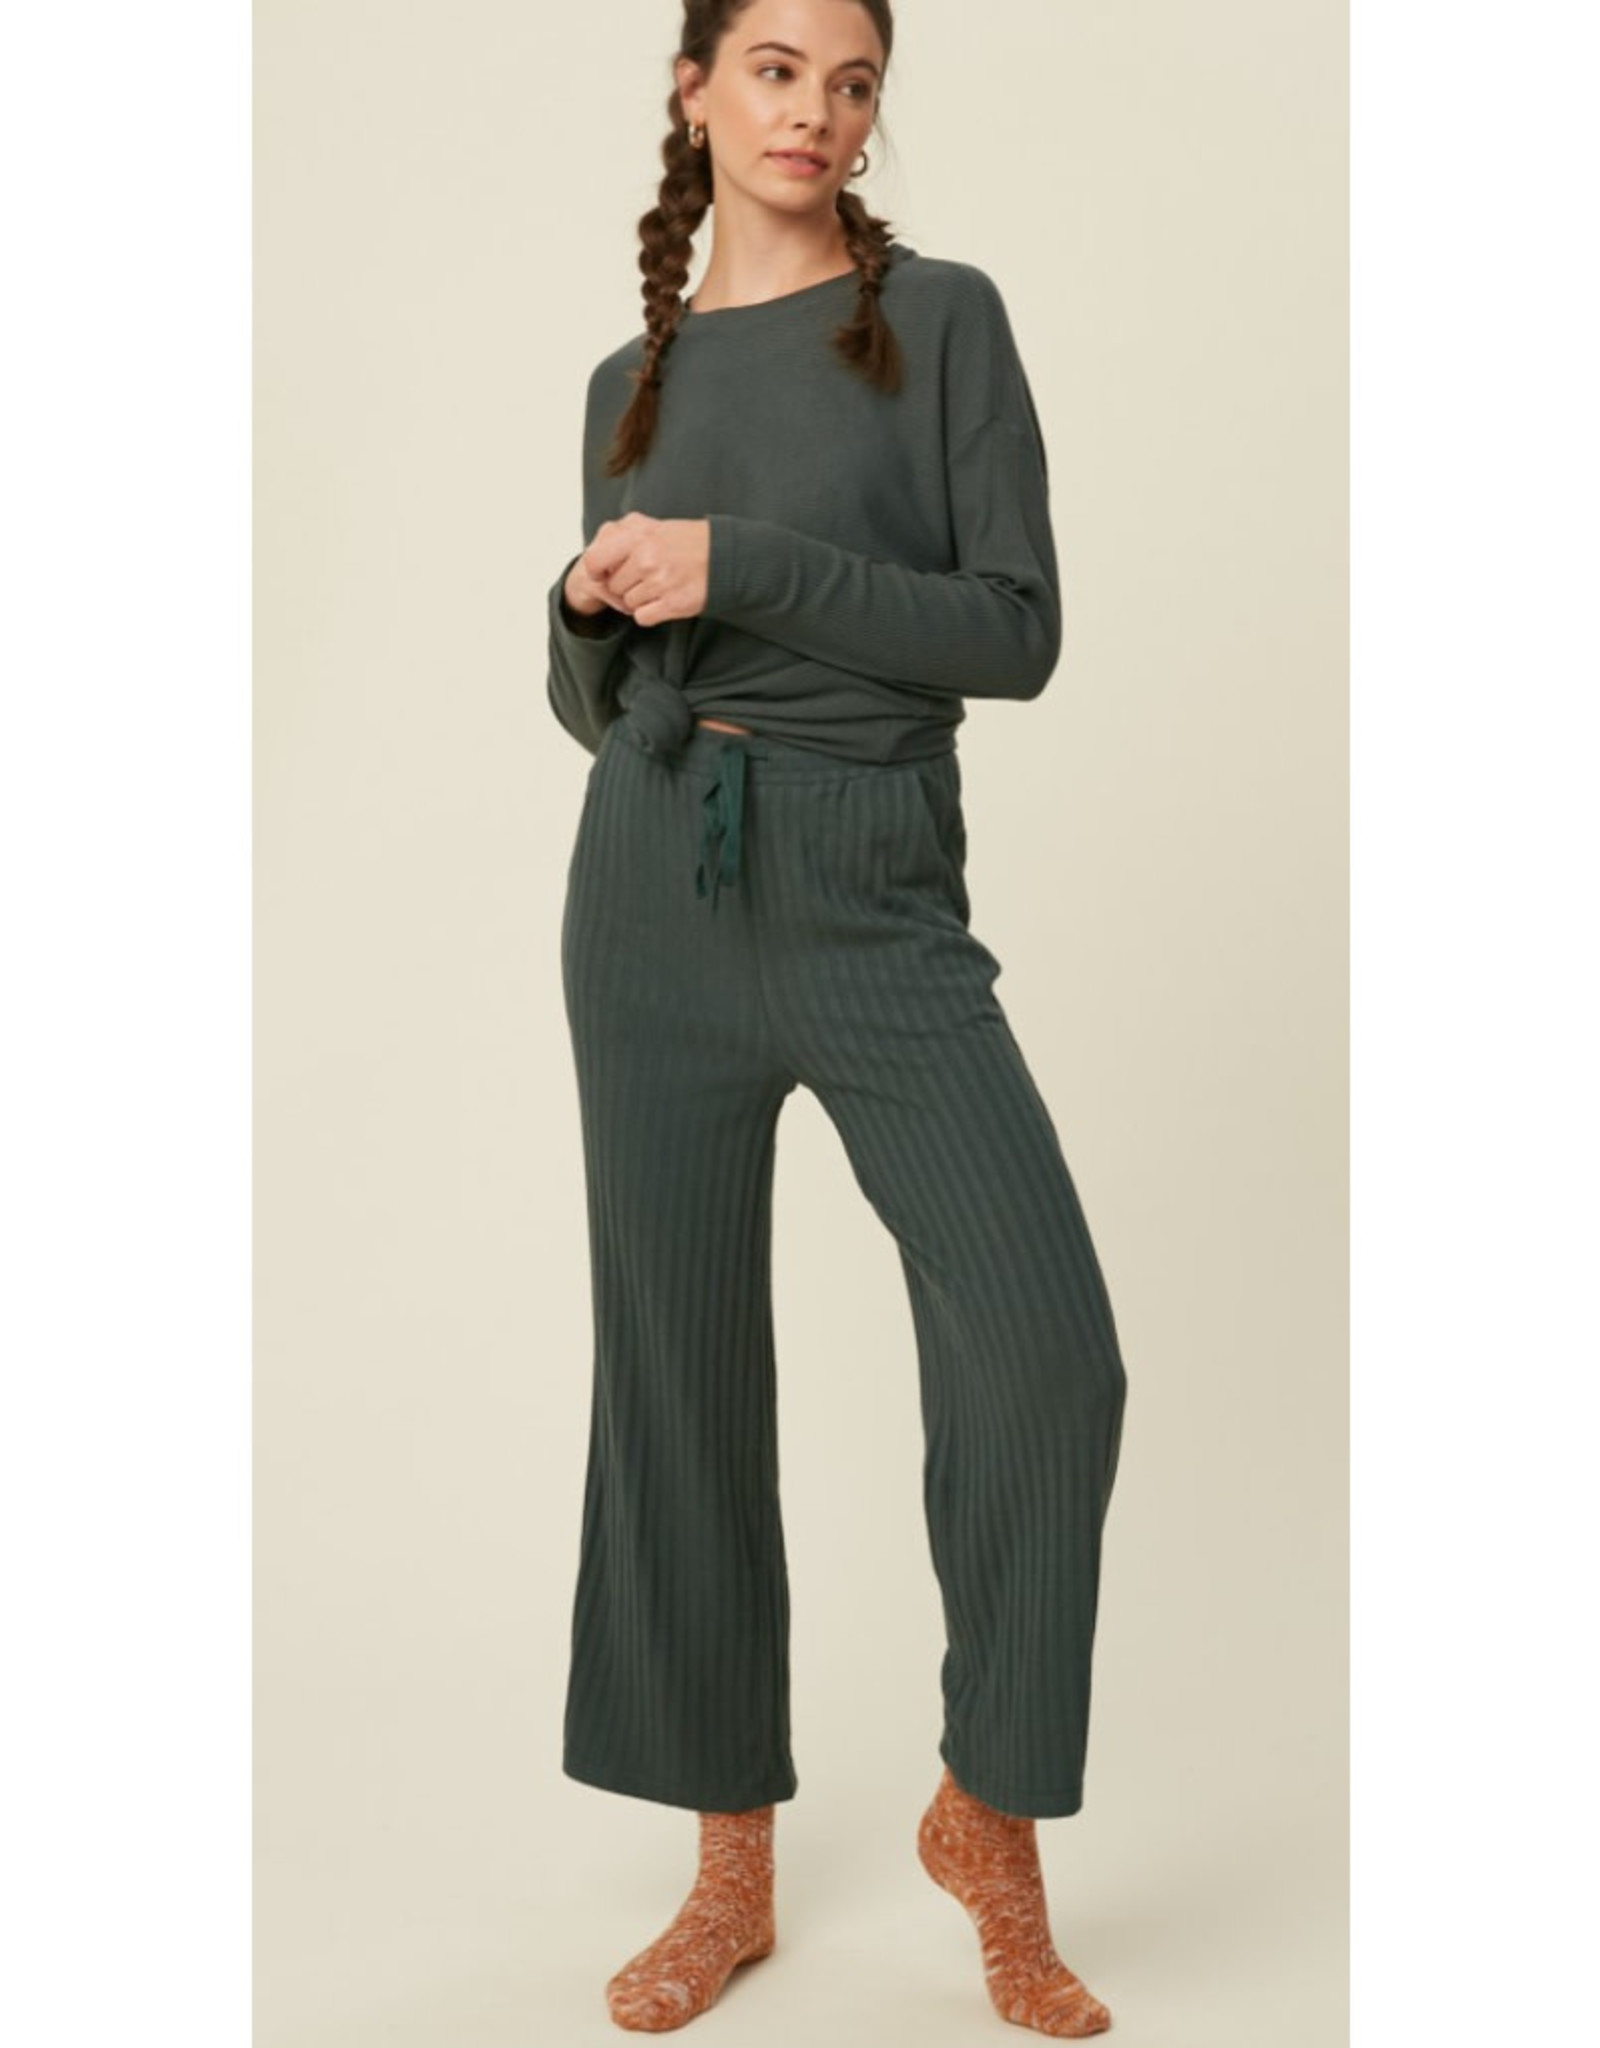 Ribbed Knit Lounge Top